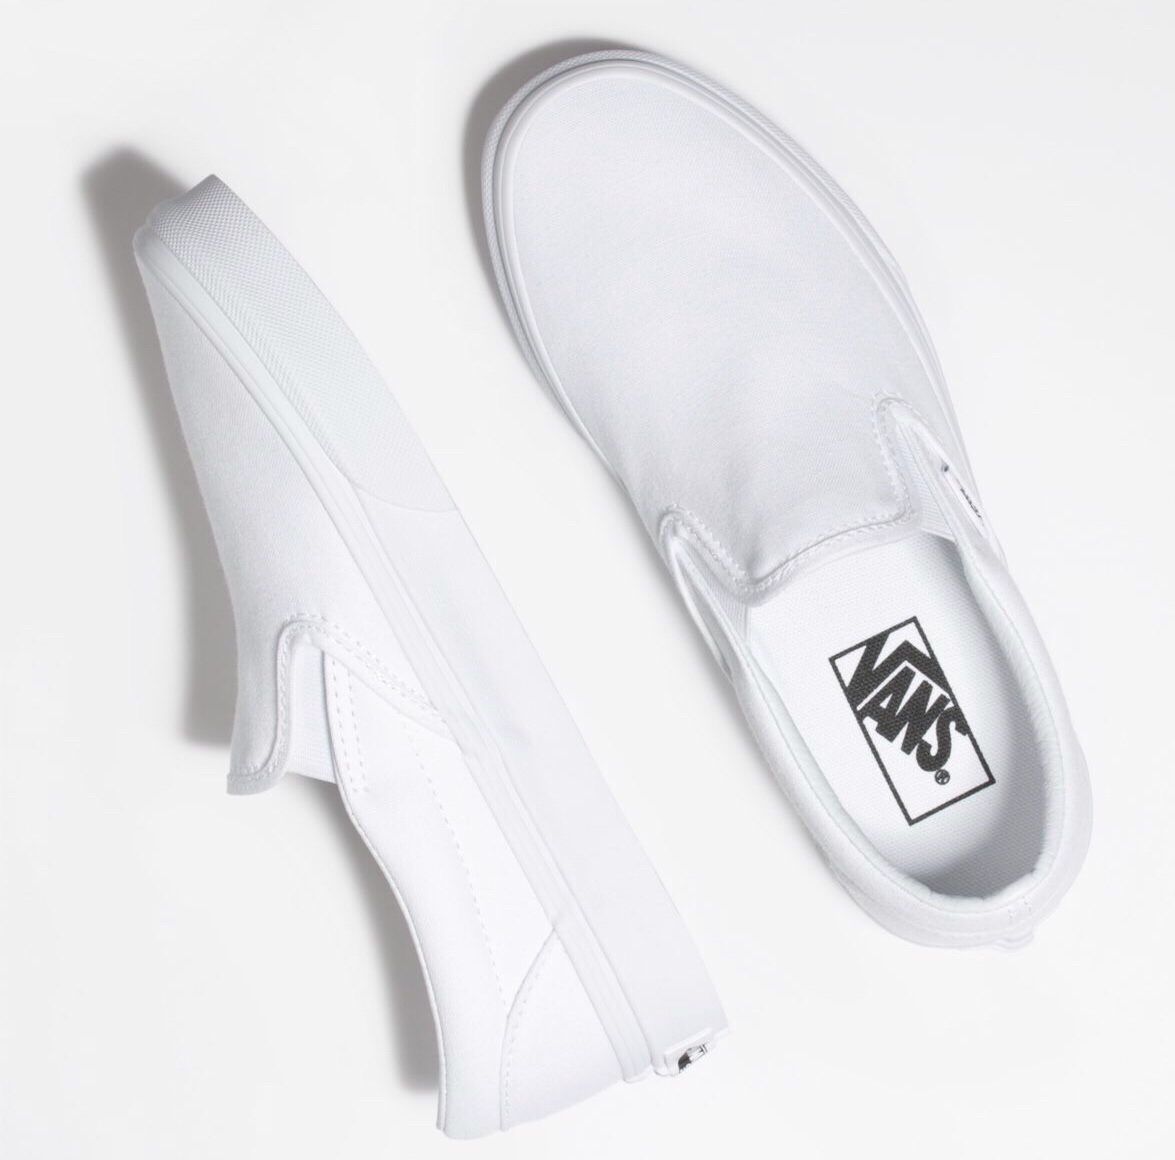 Affordable Sneakers For Back To School 2018 Caution District